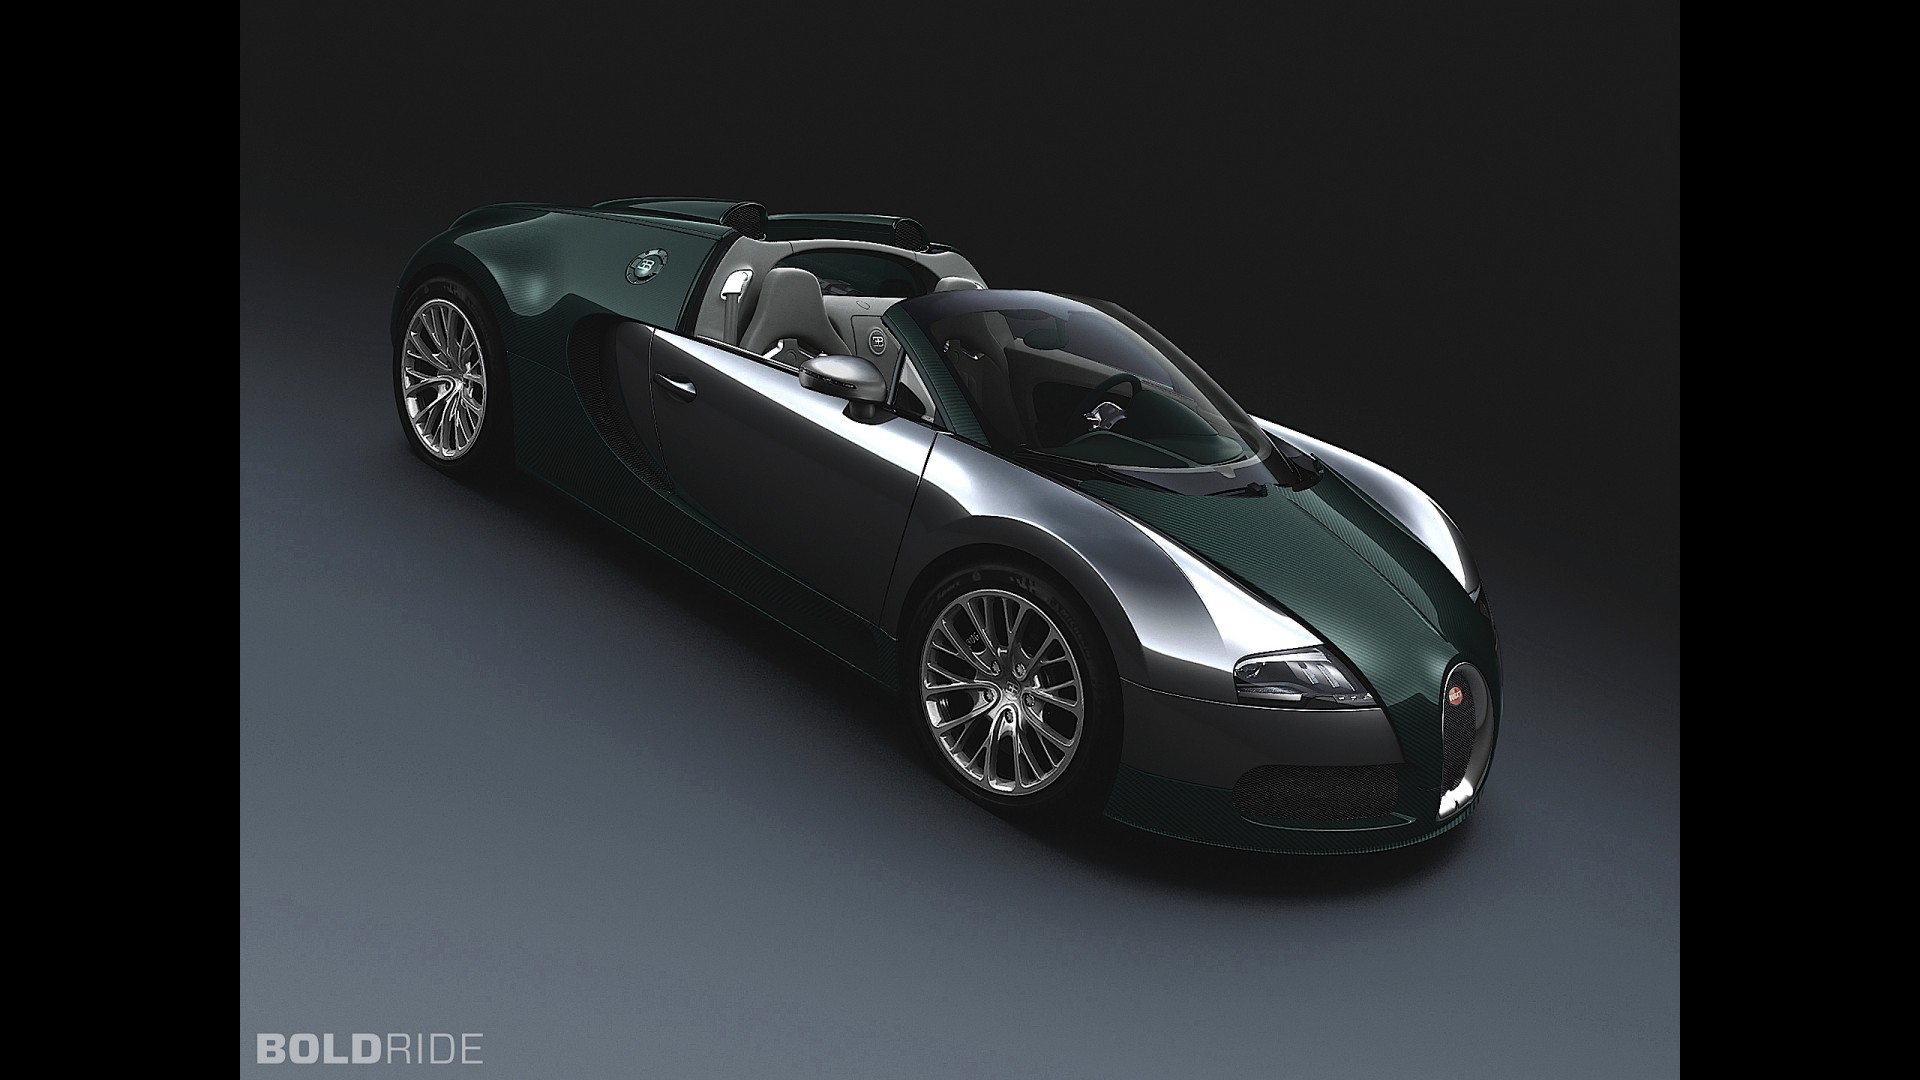 wallpapers veyron car bugatti wallpaper id diamond super hd normal sport